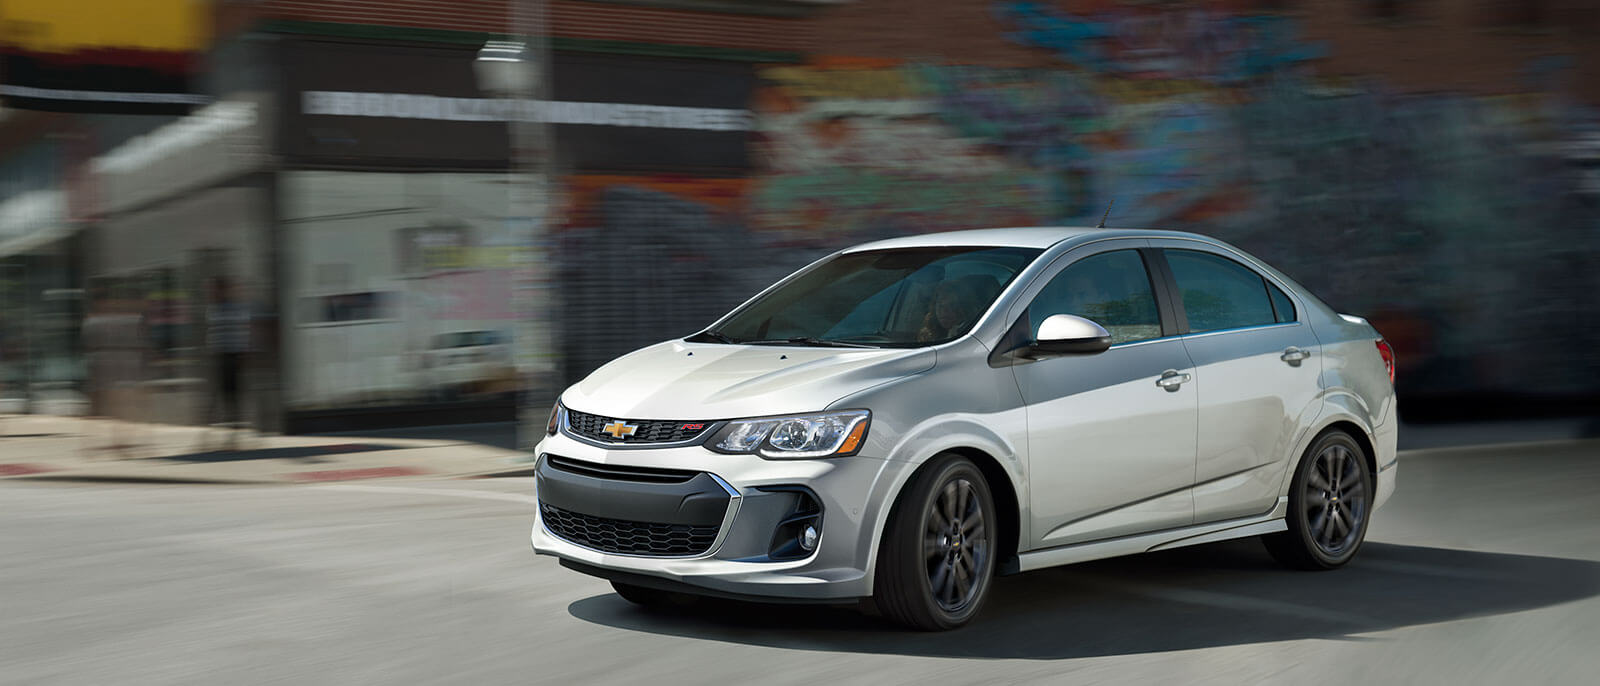 2017 Chevrolet Sonic in the city